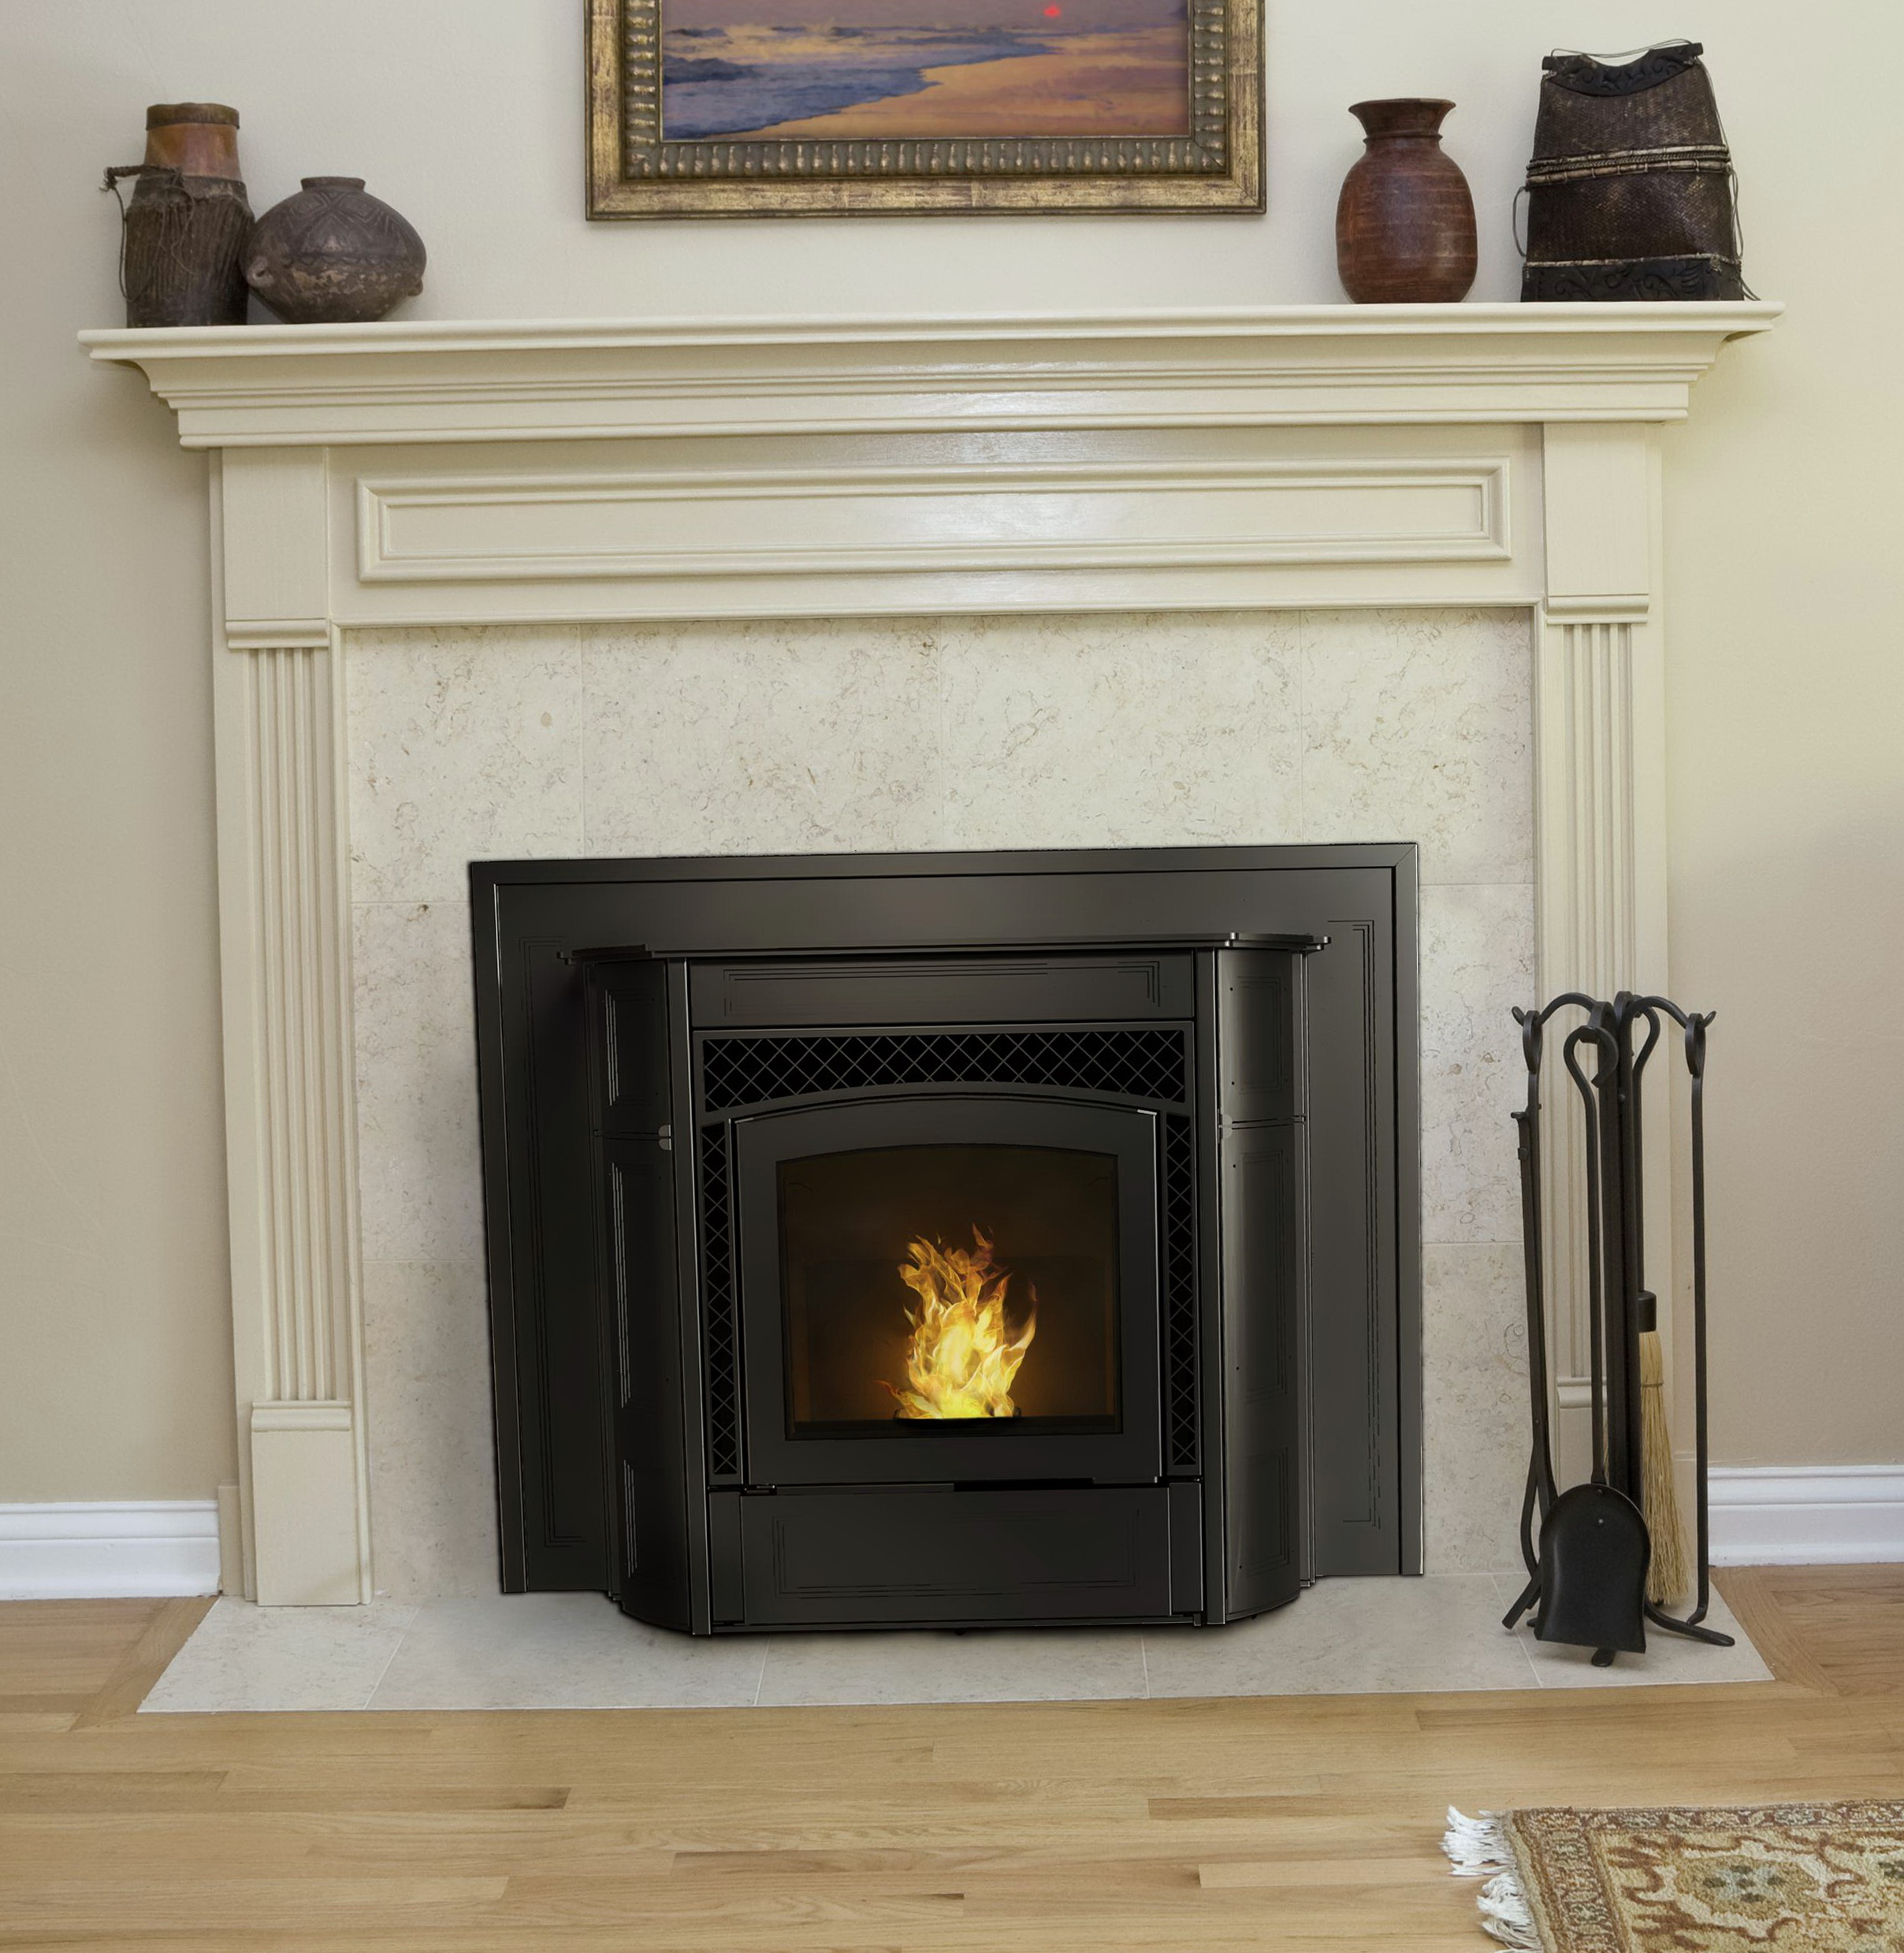 Glacier Bay Wood Stove Fireplace Insert | Home Design Ideas